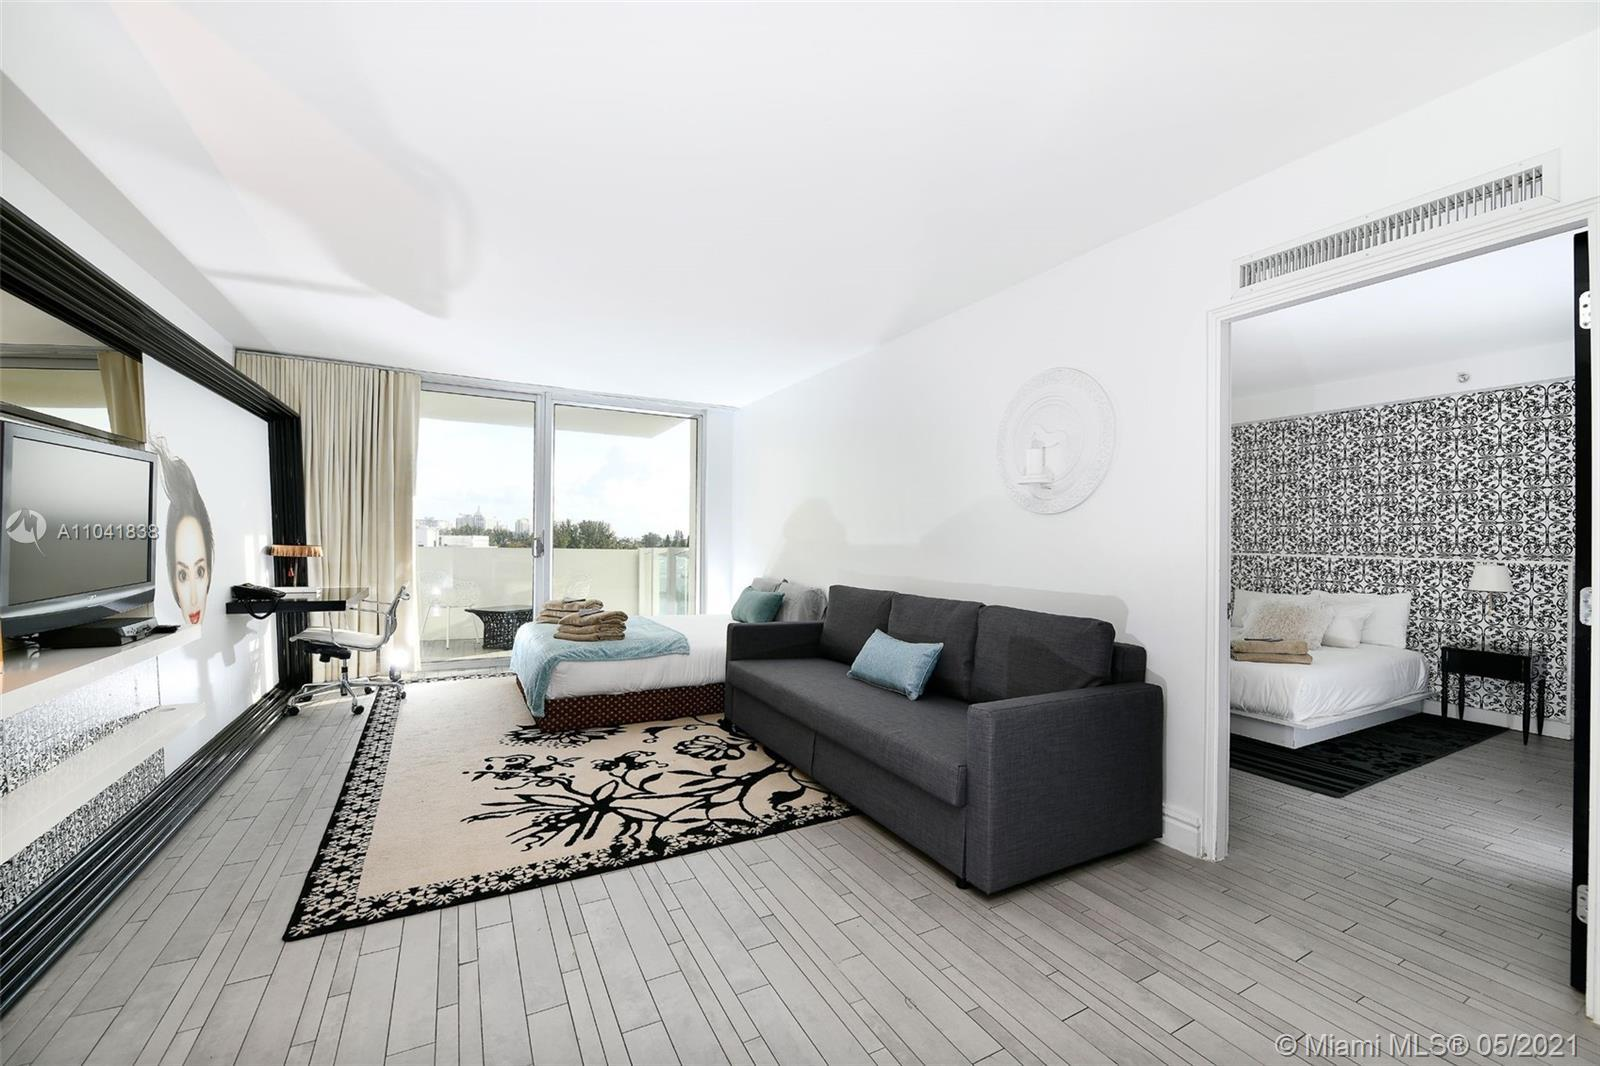 Stunning corner unit with spectacular views of Miami Skyline, just minutes away from Downtown Miami,